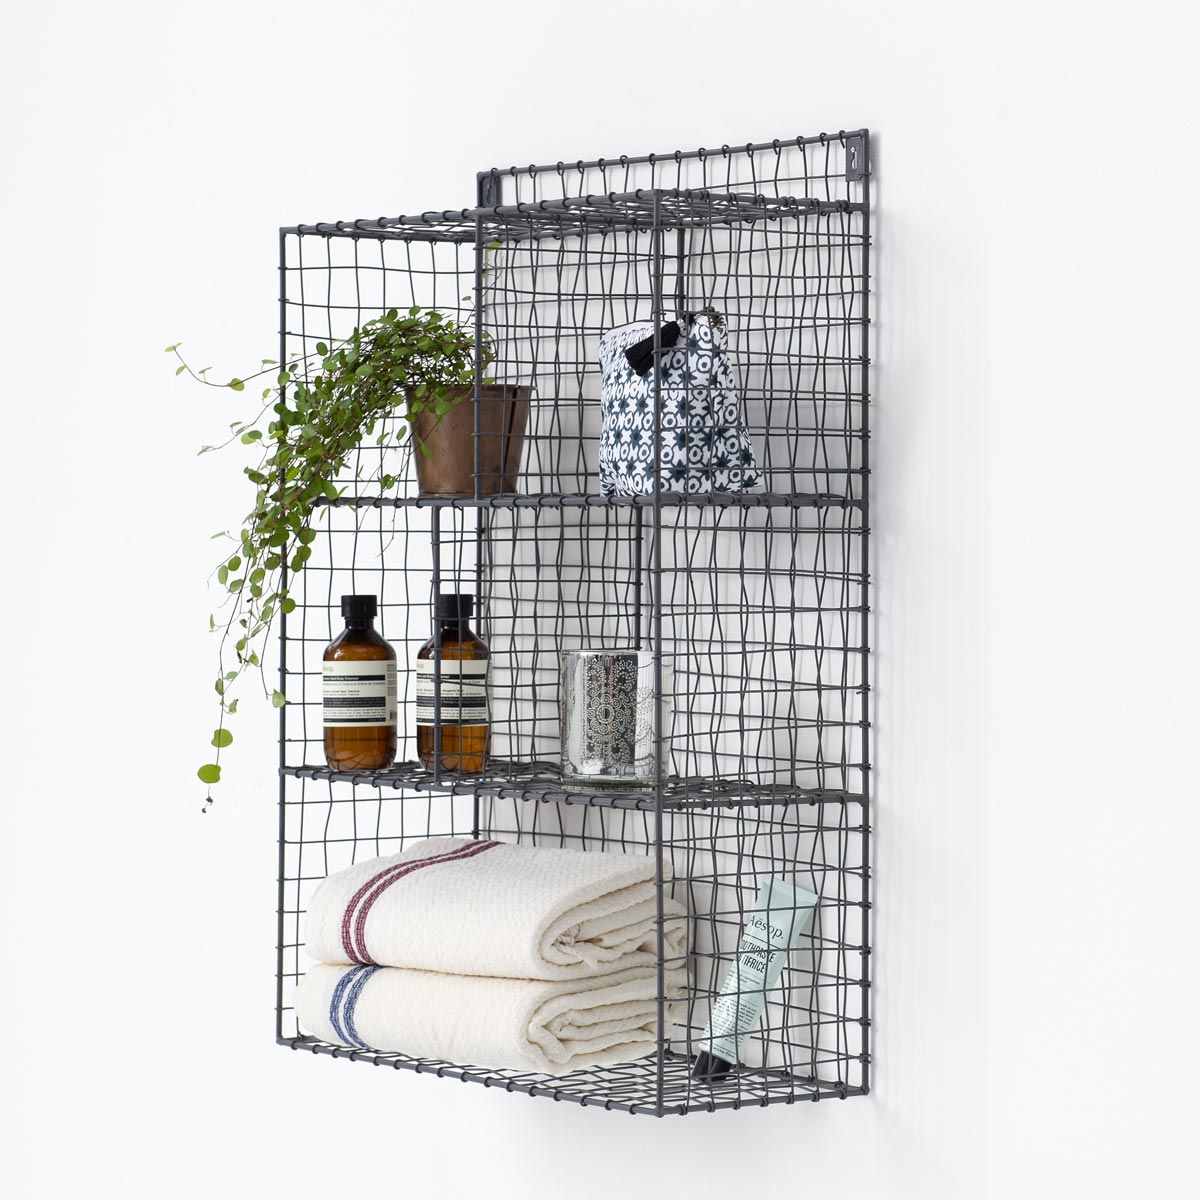 Etagère murale en métal grillagé 5 niches Greed Maison Tilleul - anthracite